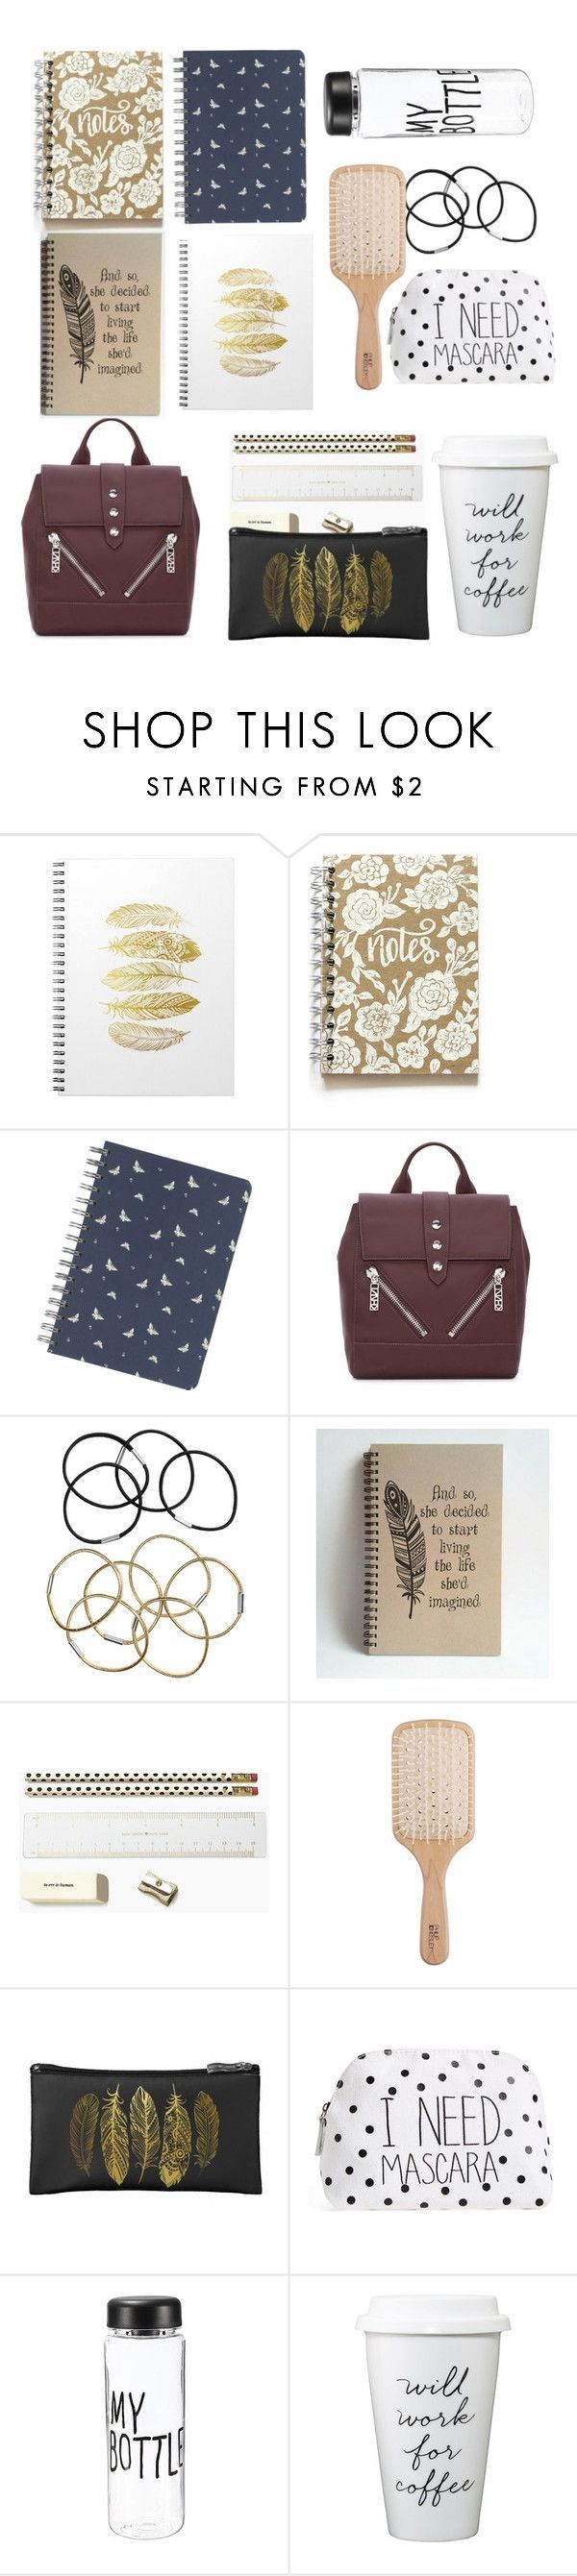 """Allison Argent School Essentials"" by shadyannon ❤ liked on Polyvore featuring Fat Face, Kenzo, H&M, Kate Spade, Philip Kingsley and Itsa Girl Thing"